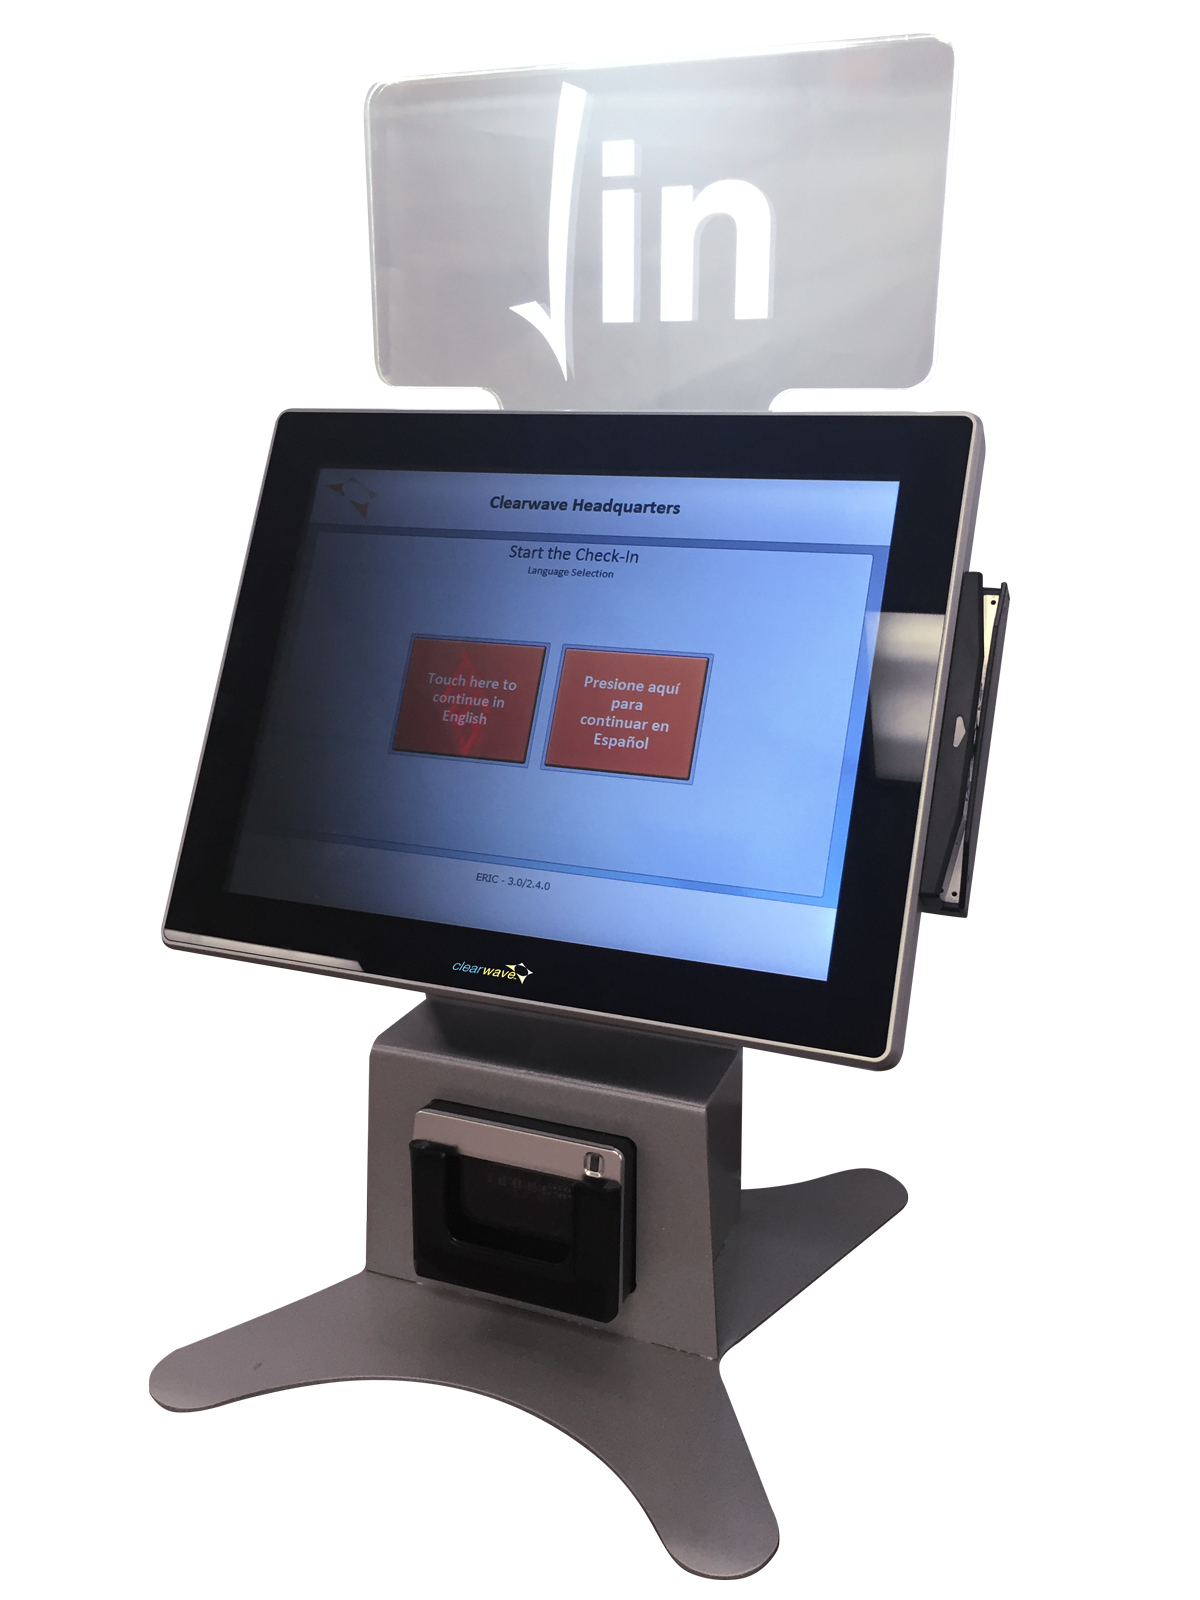 Andrews Sports Medicine Amp Orthopaedic Center Improves Workflow With Clearwave Kiosks